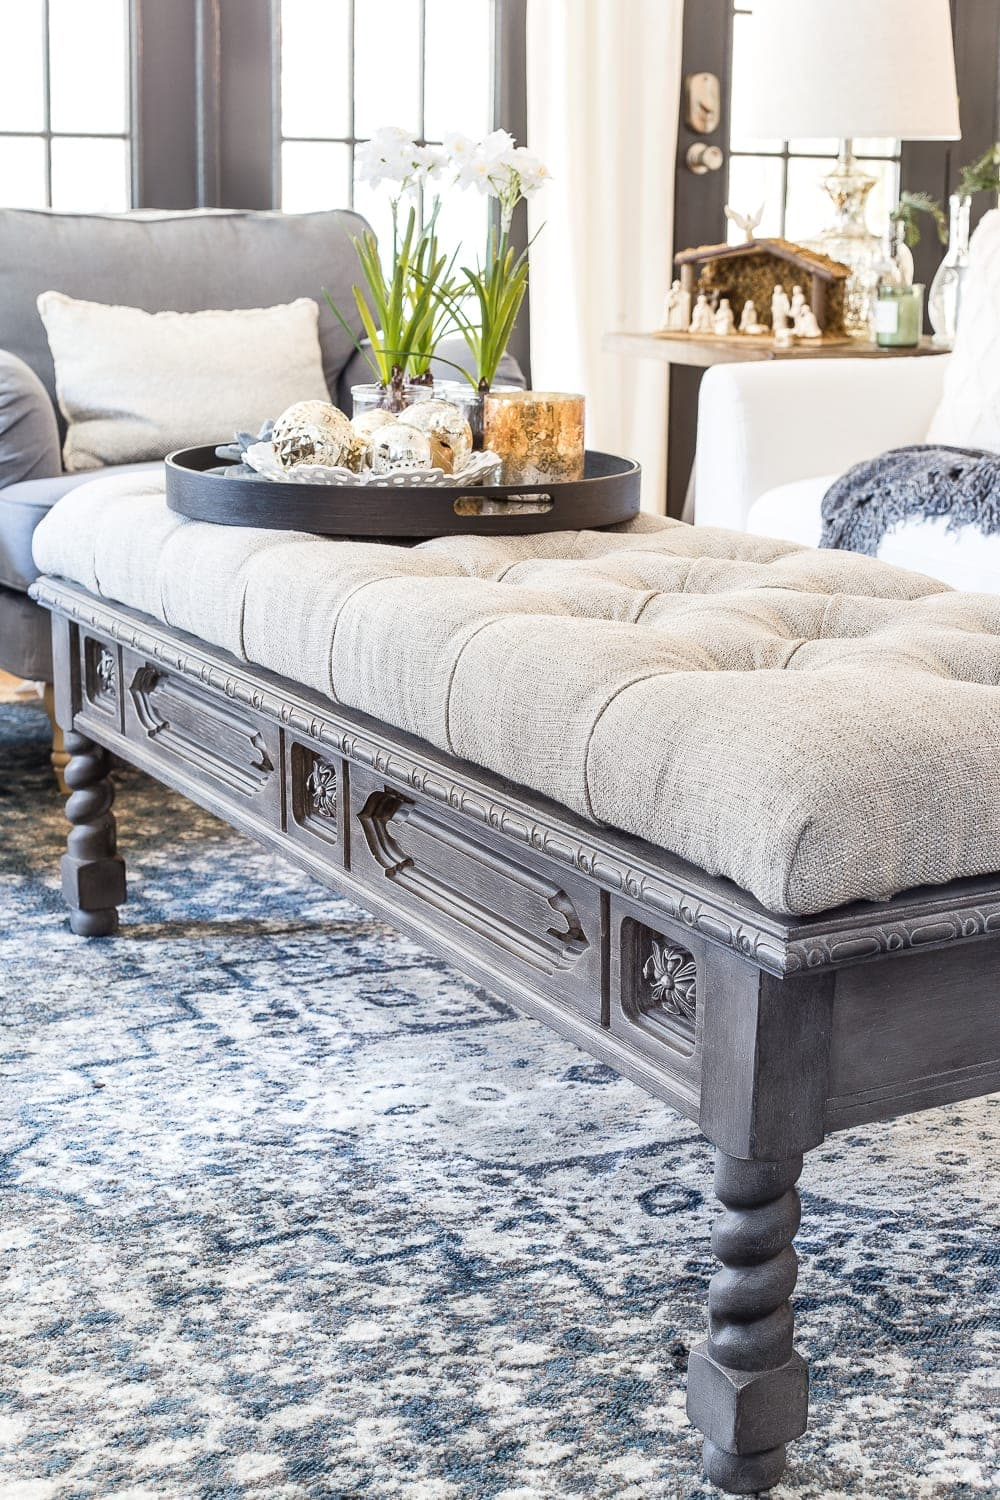 Pleasant Diy Ottoman Bench From A Repurposed Coffee Table Blesser Machost Co Dining Chair Design Ideas Machostcouk